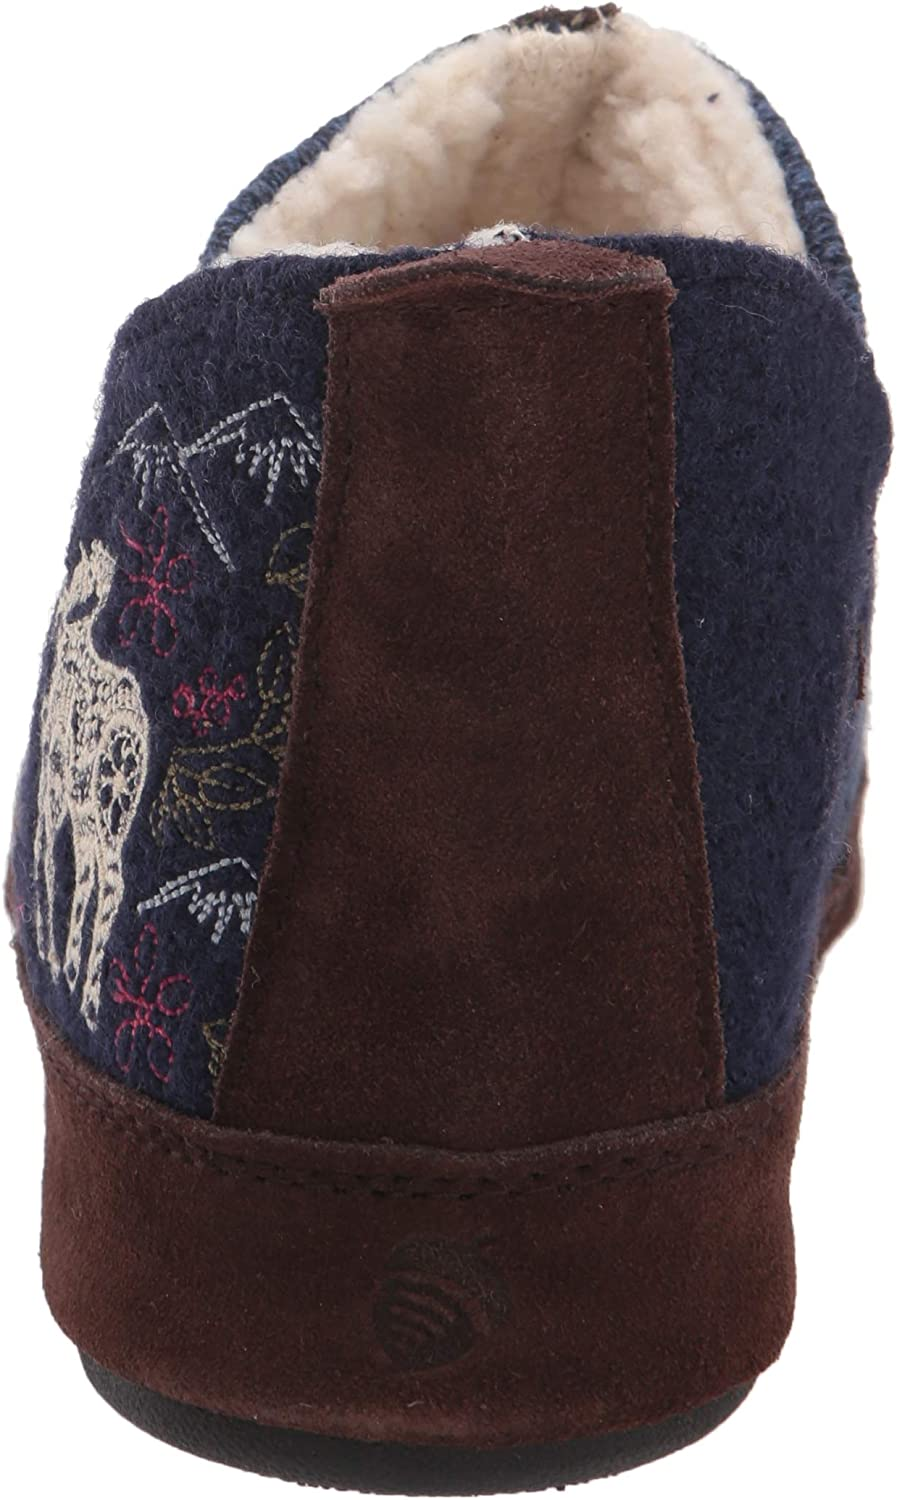 Acorn Women's Slipper Navy Blue Mouse